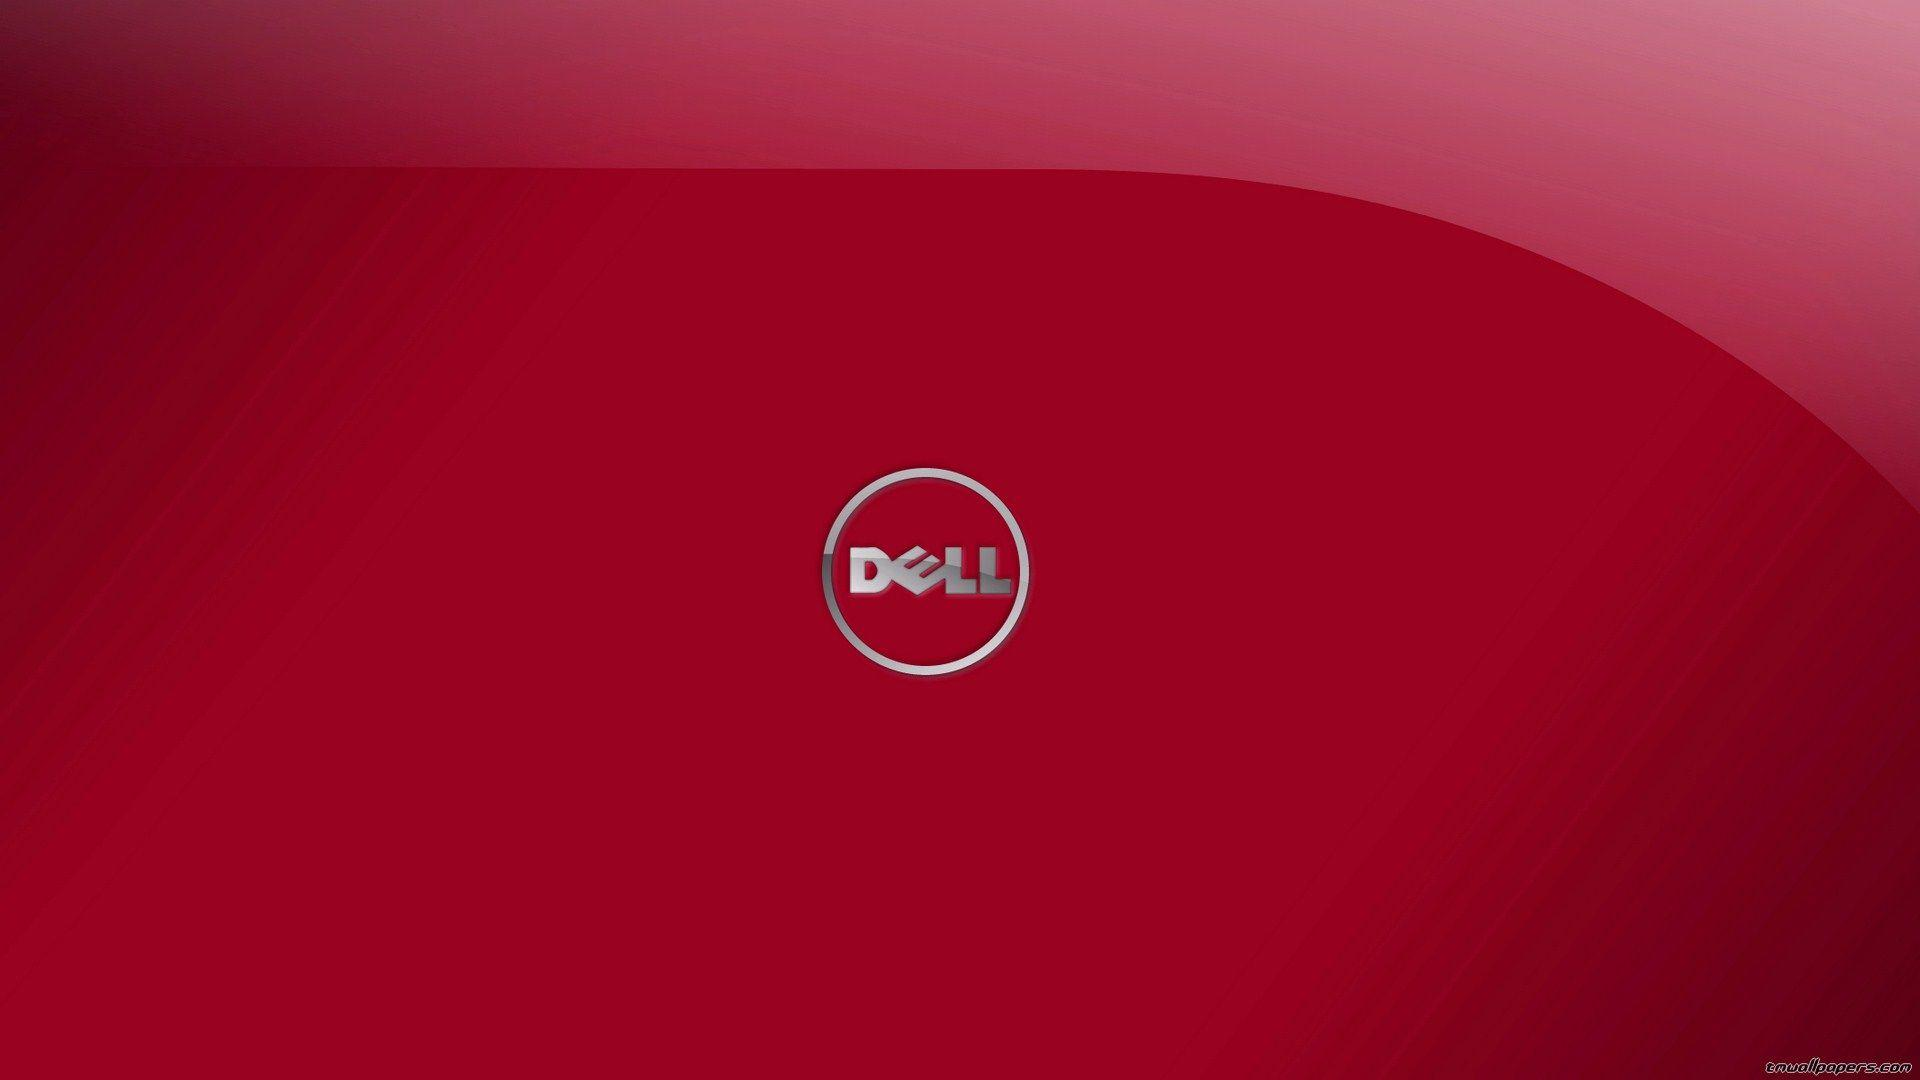 1920x1080 Dell Wallpapers